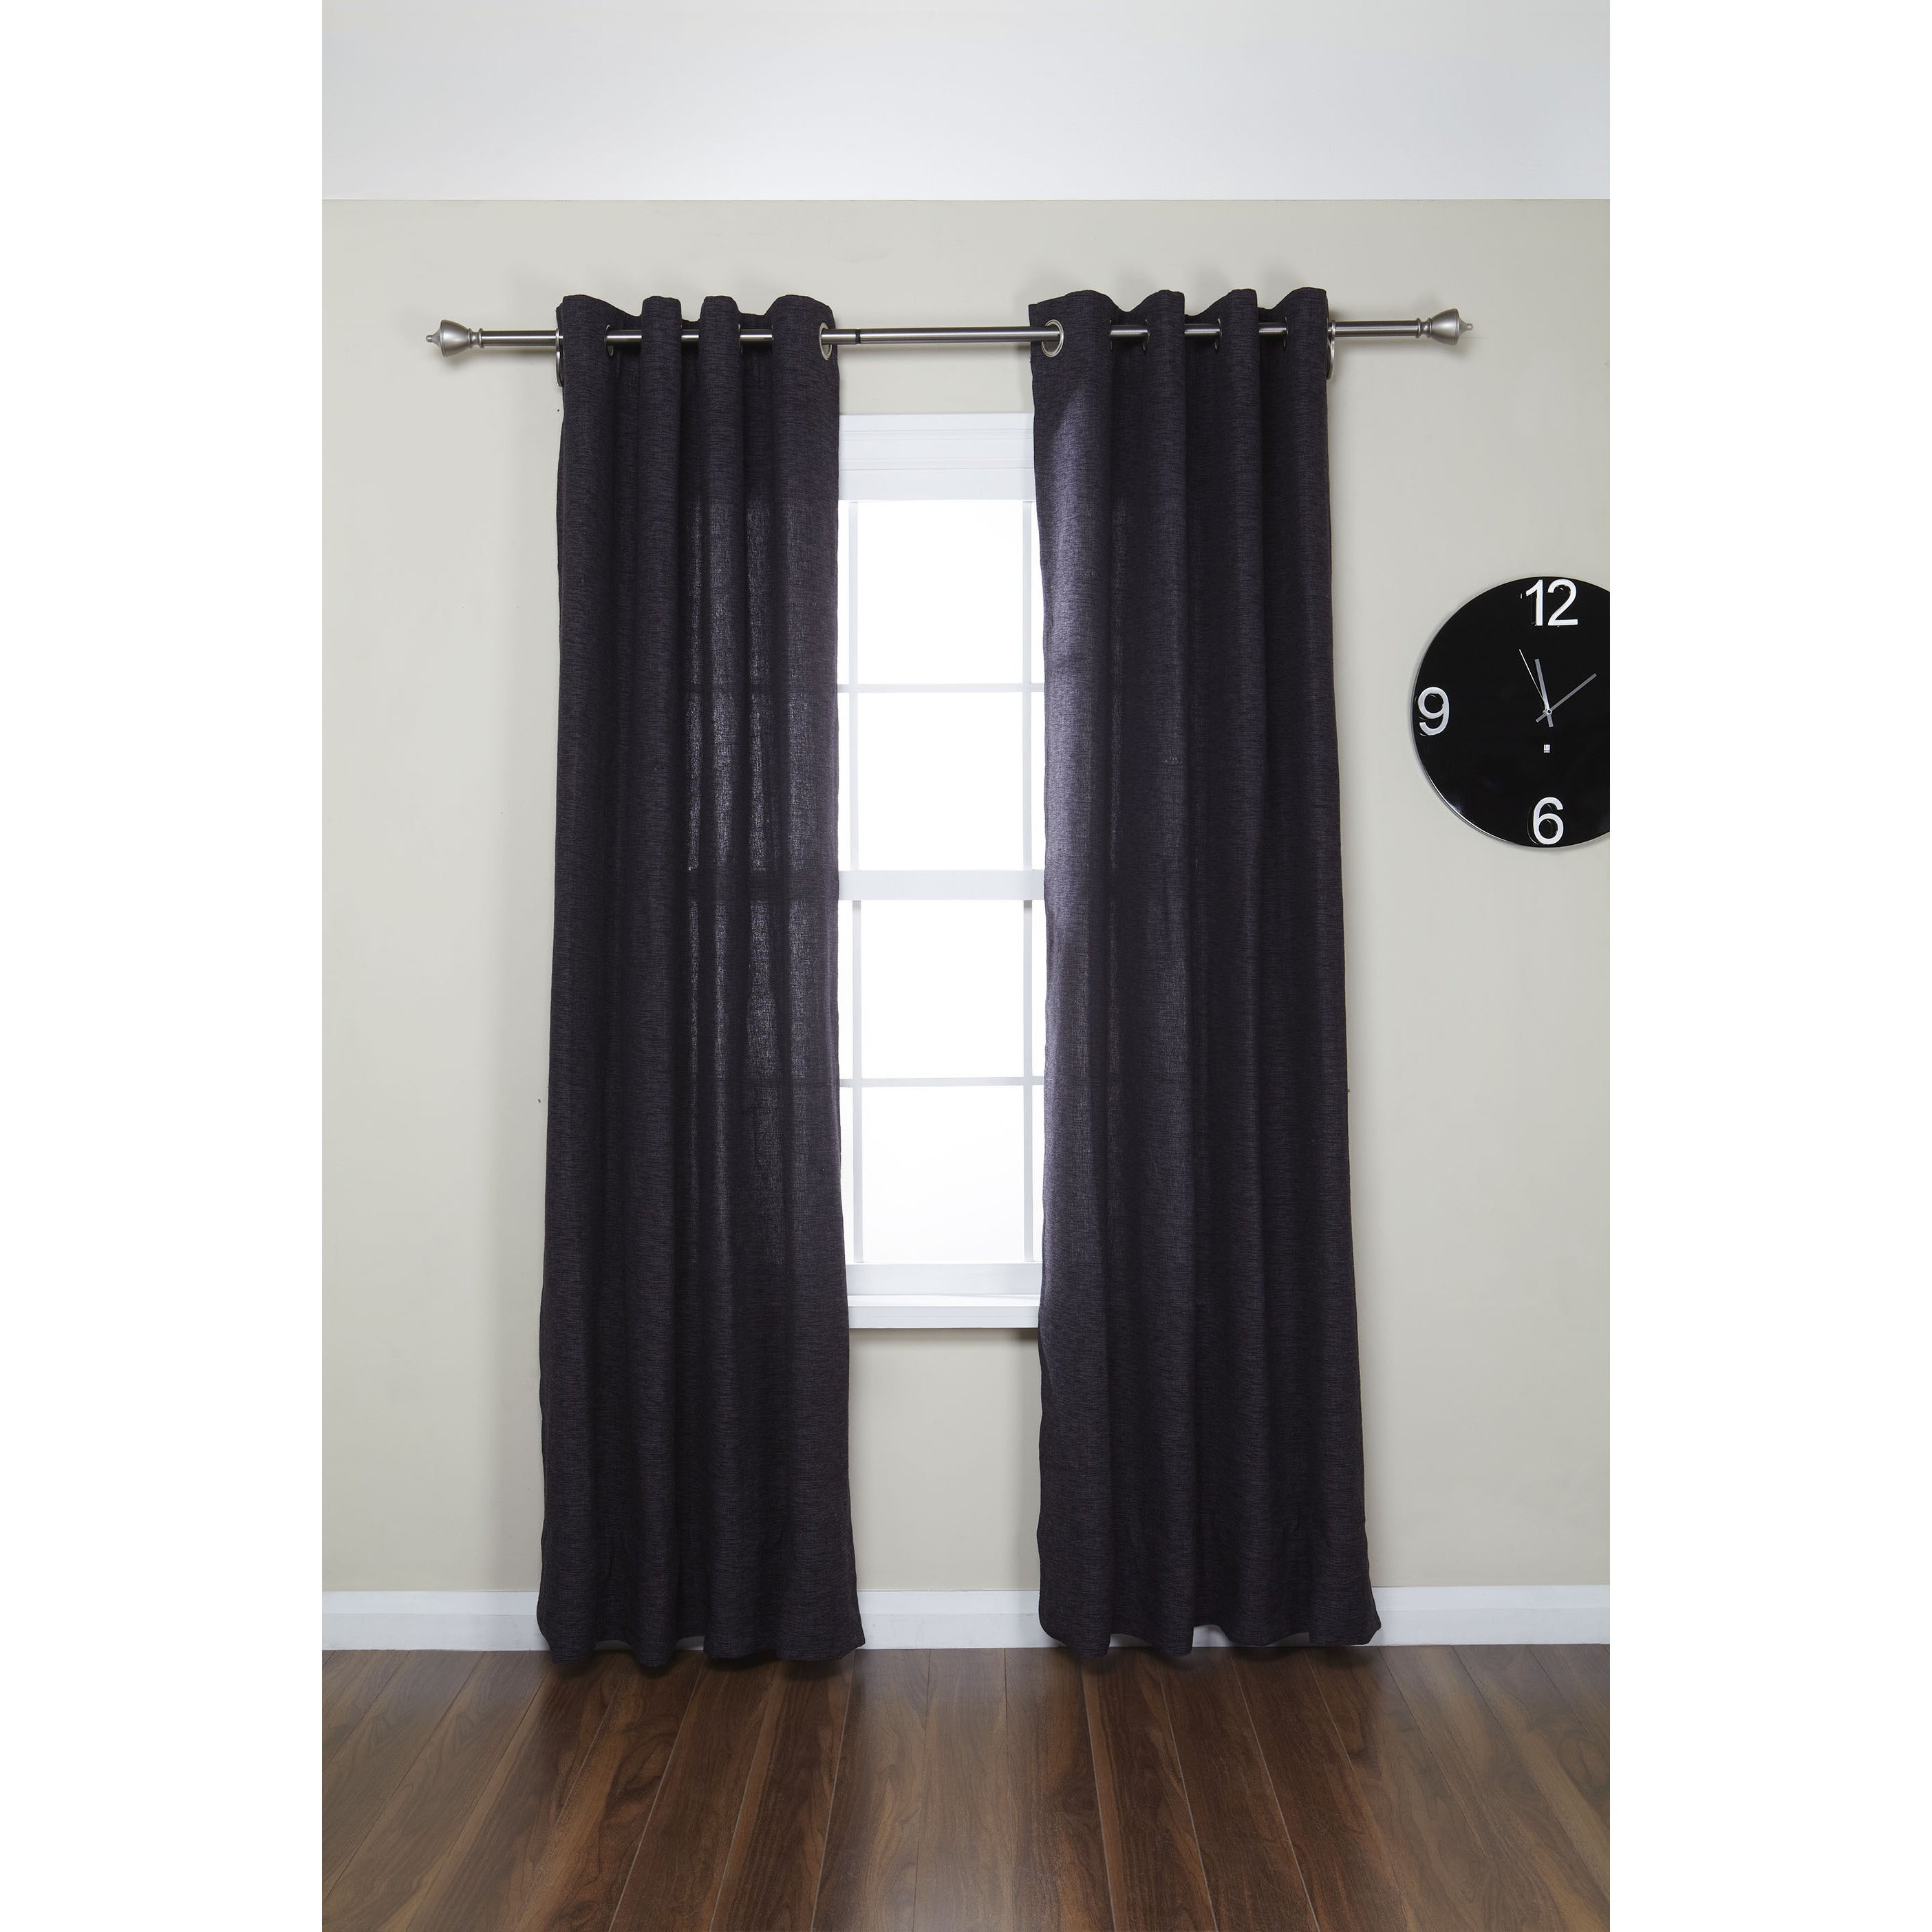 pole your curtain tension design vrboska unbelievable rods home curved inspiration february hotel build interior shower rod ideas plush designing for up great adjustable beautiful stylish